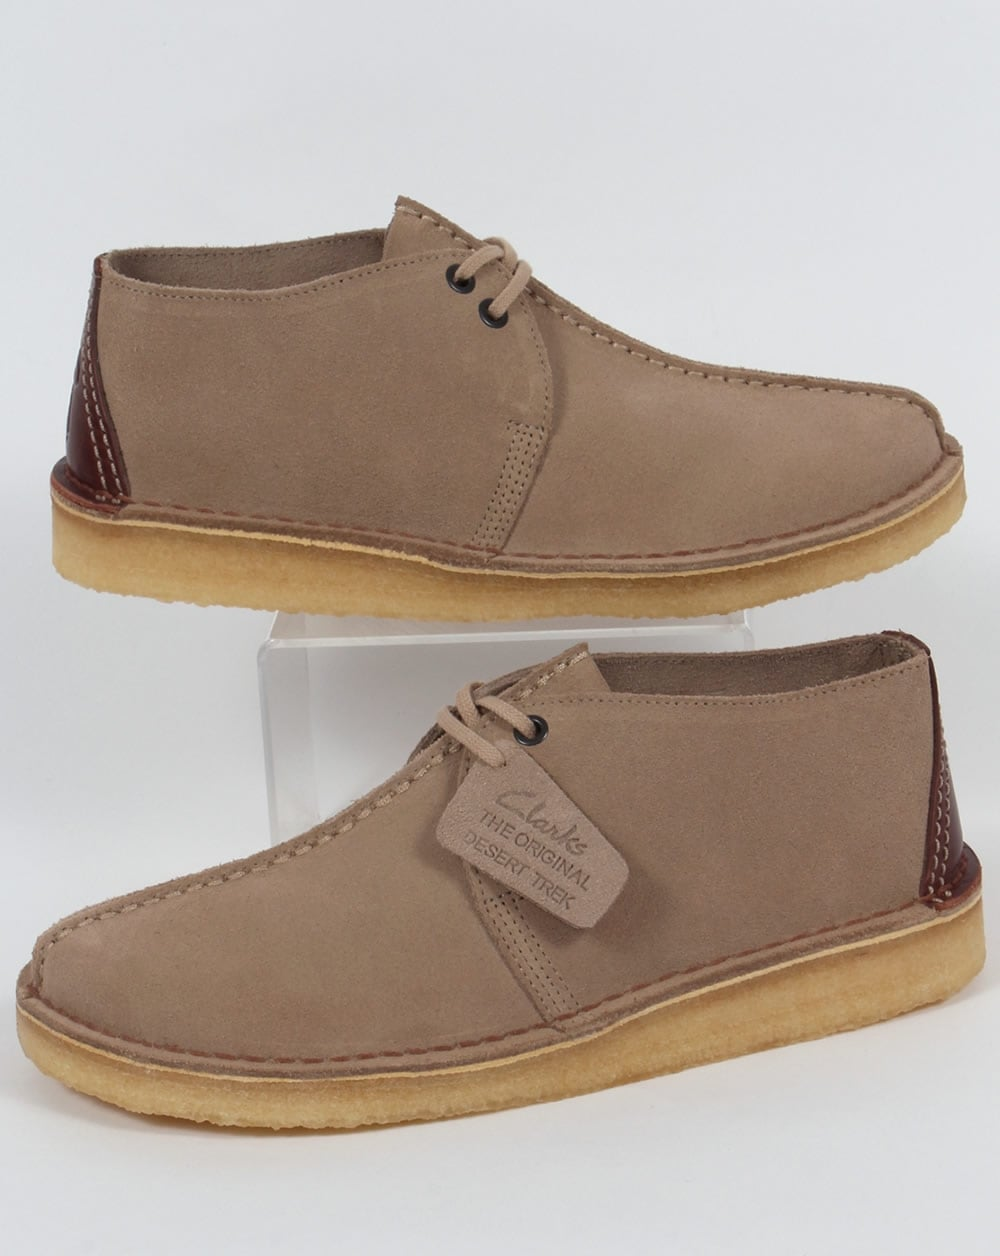 c5d1fb76 Clarks Originals Desert Trek Suede Shoes Sand